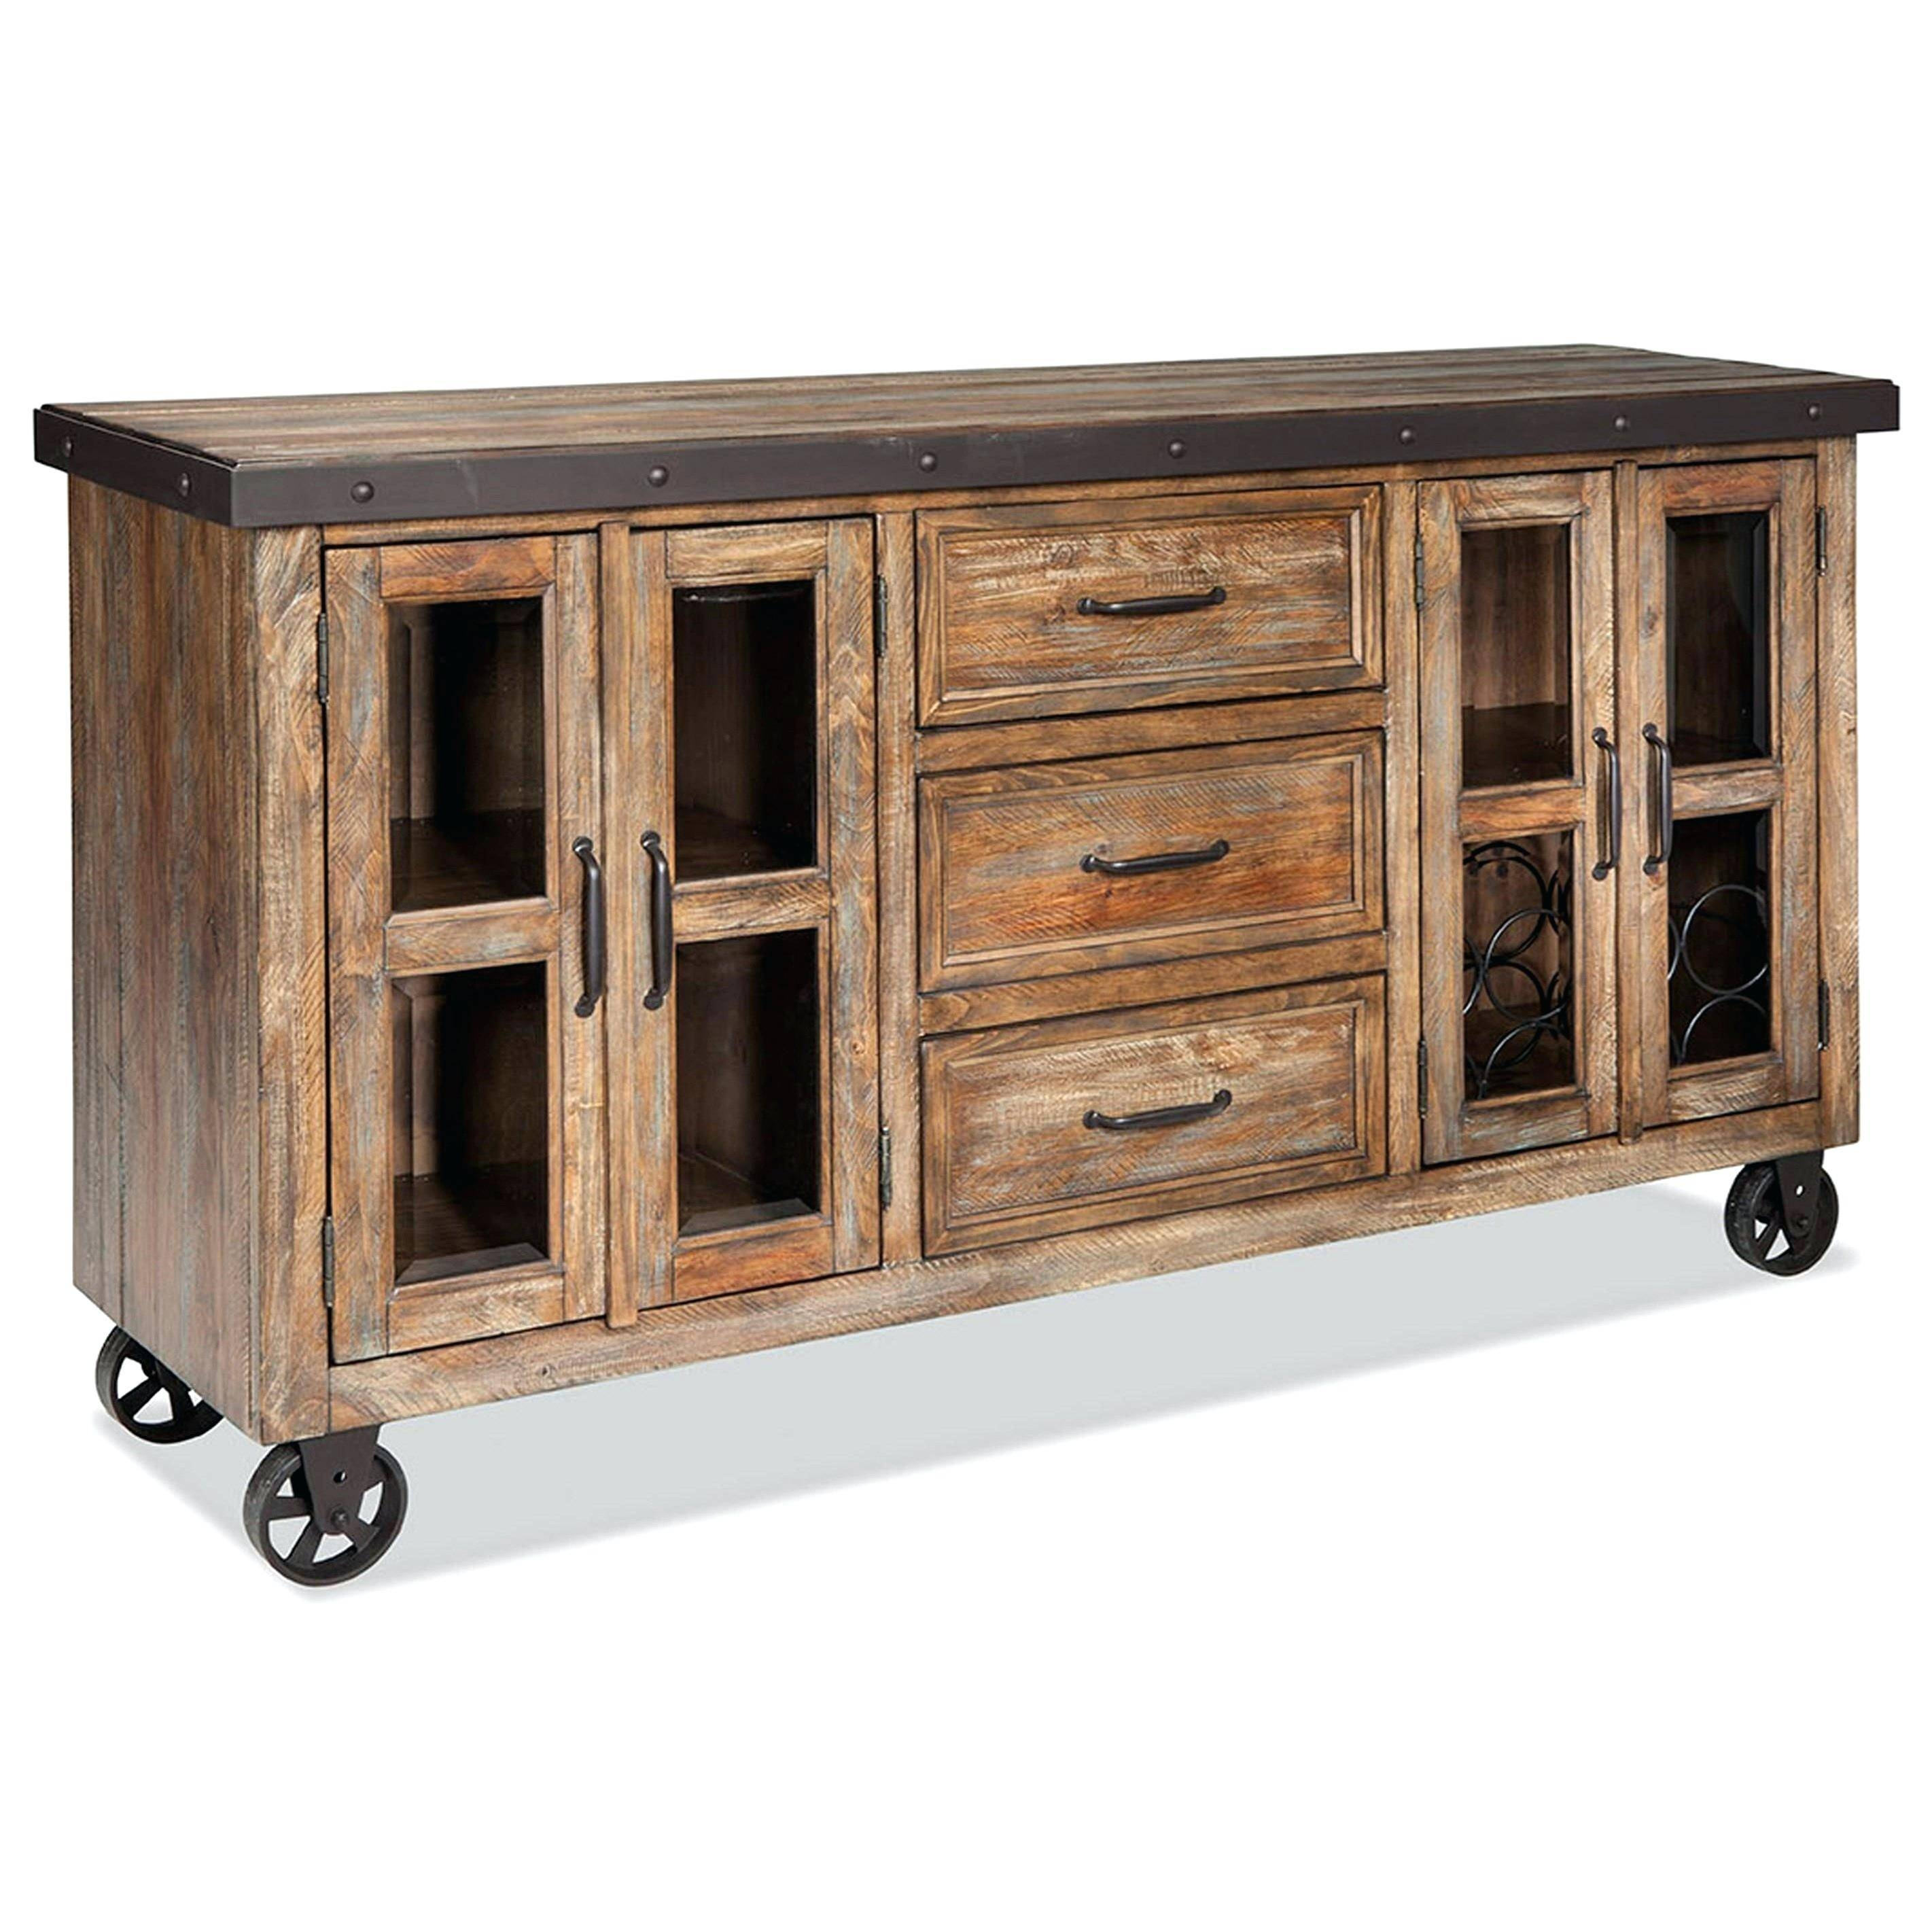 Rustic Sideboards Rustic Sideboard With Roll Up Media Drawer For Latest Rustic Buffet Sideboards (#9 of 15)